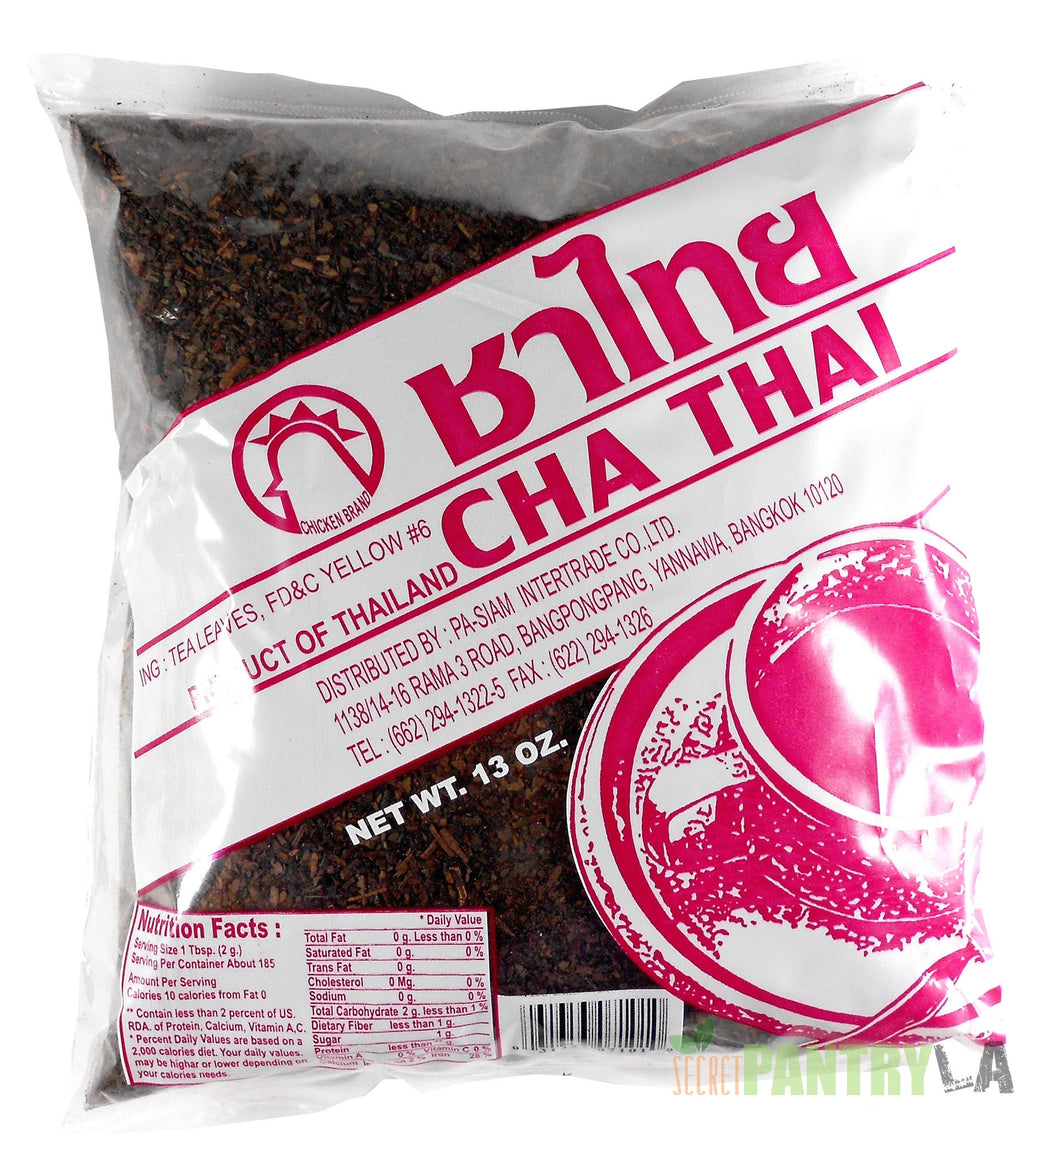 Cha Thai Tea Leaves Mix Chicken Brand 13 Oz.